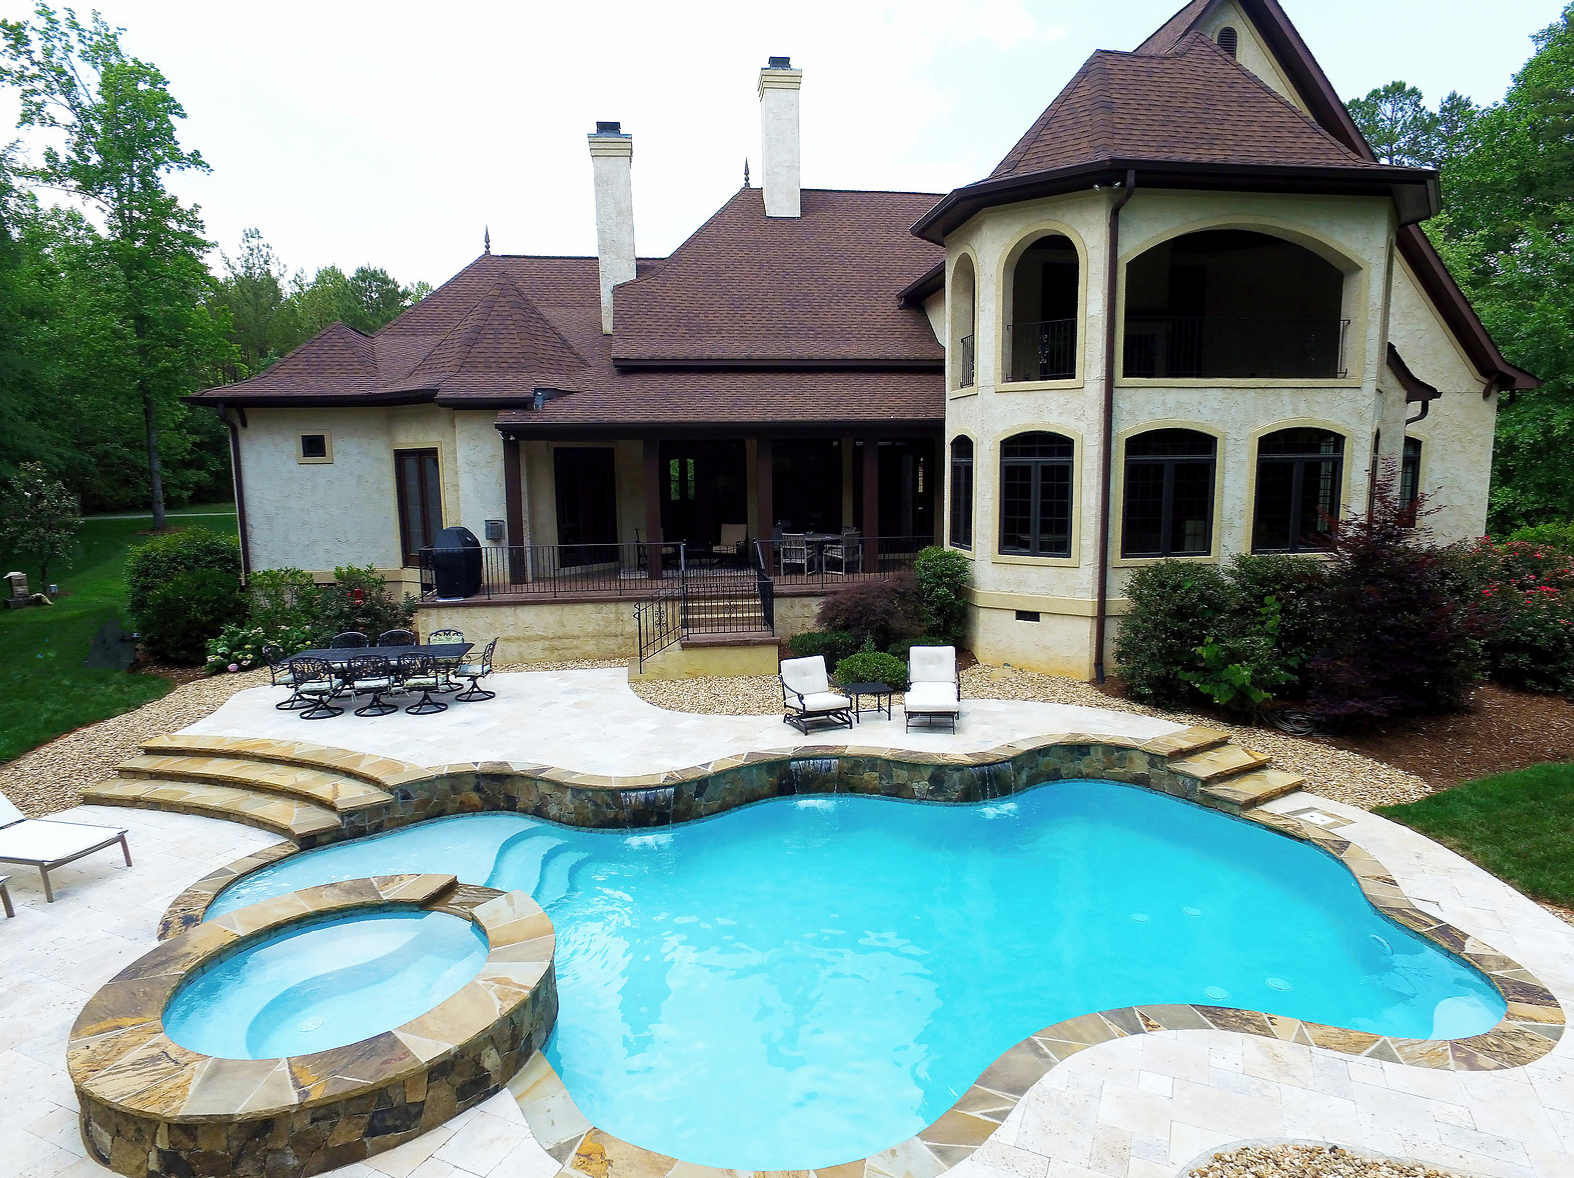 Fiberglass Swimming Pools Vs Concrete Swimming Pools Which Is A Better Pool